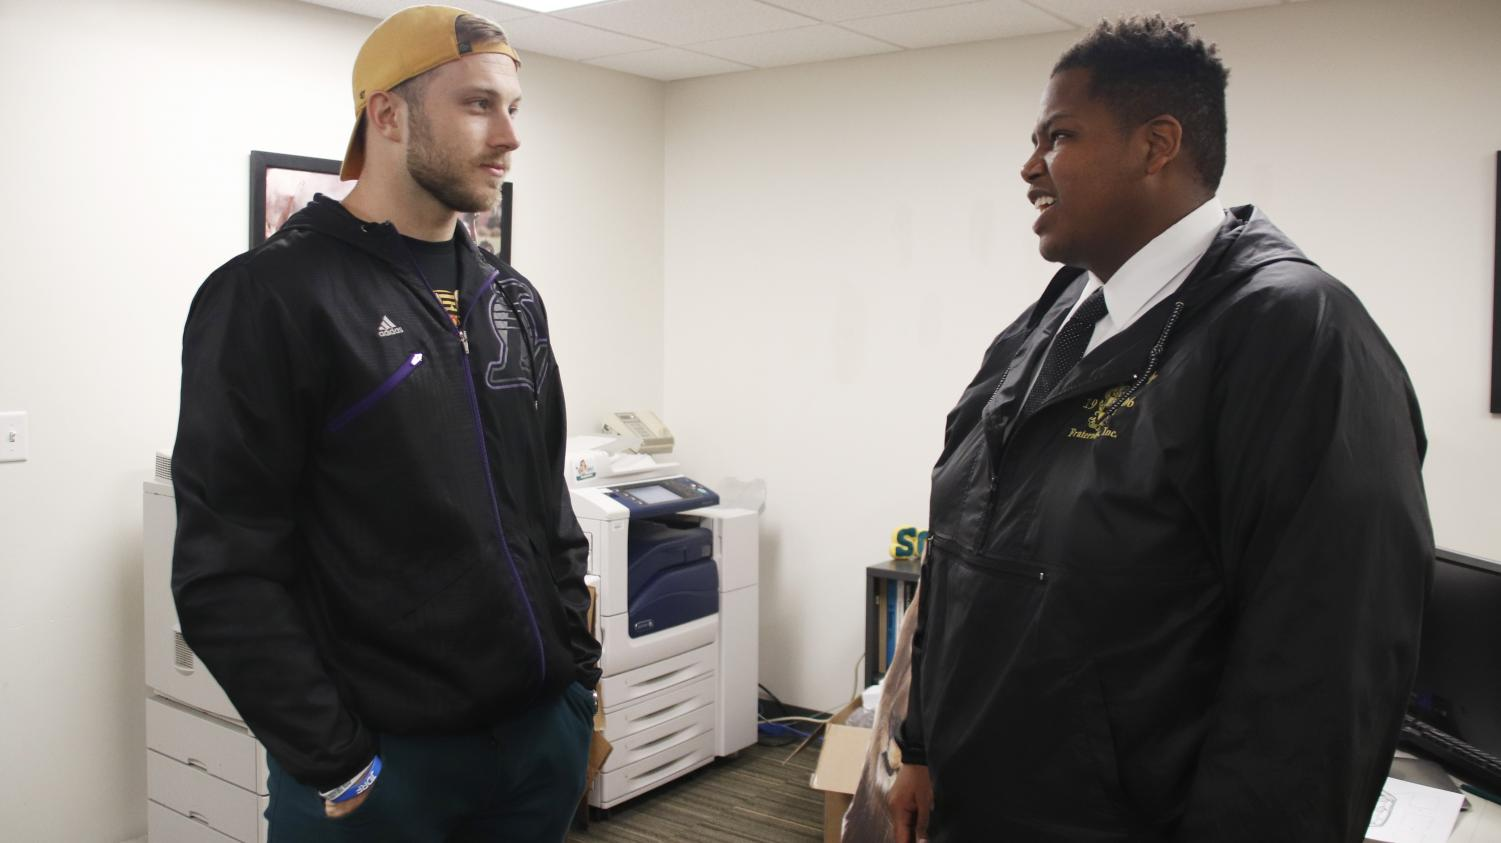 """Johannes """"Joey"""" Verhaegh, a graduate assistant for Multicultural and International Student Affairs and a former member of the Lions football team, left, speaks with Richard Davis Jr., president of the Student Government Association, right. From their position in the public, athletes can find their voices bringing attention to political topics."""